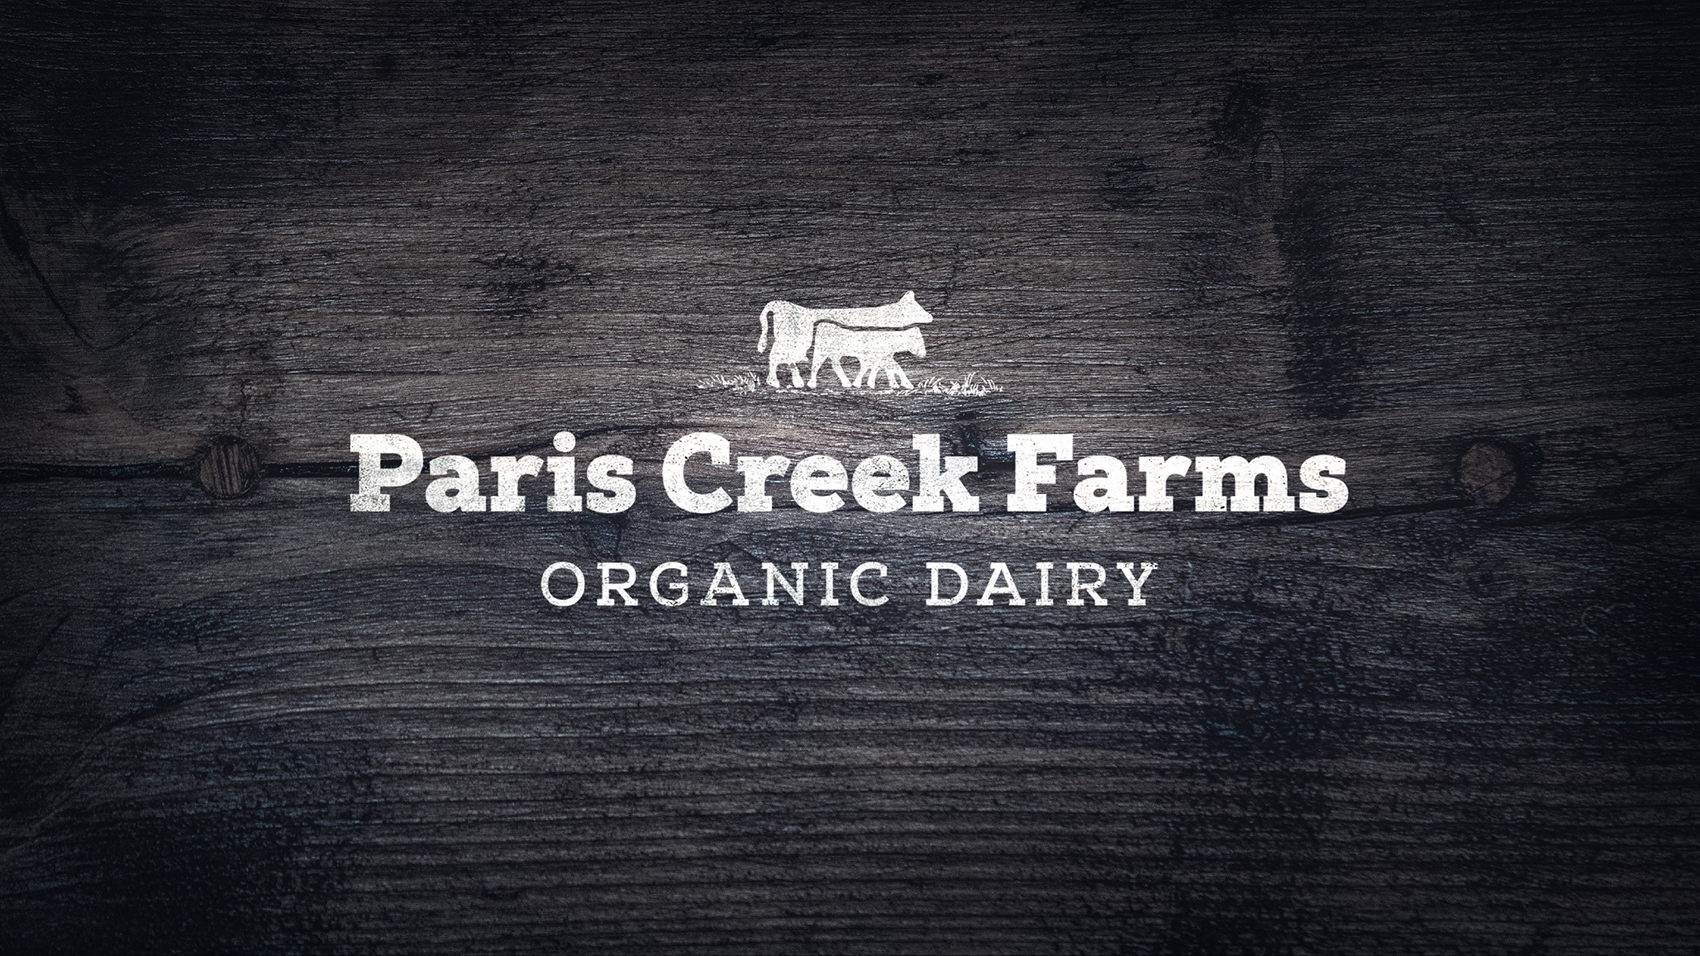 Creatik_ParisCreekFarms_3DGraphicDesign-1.jpg